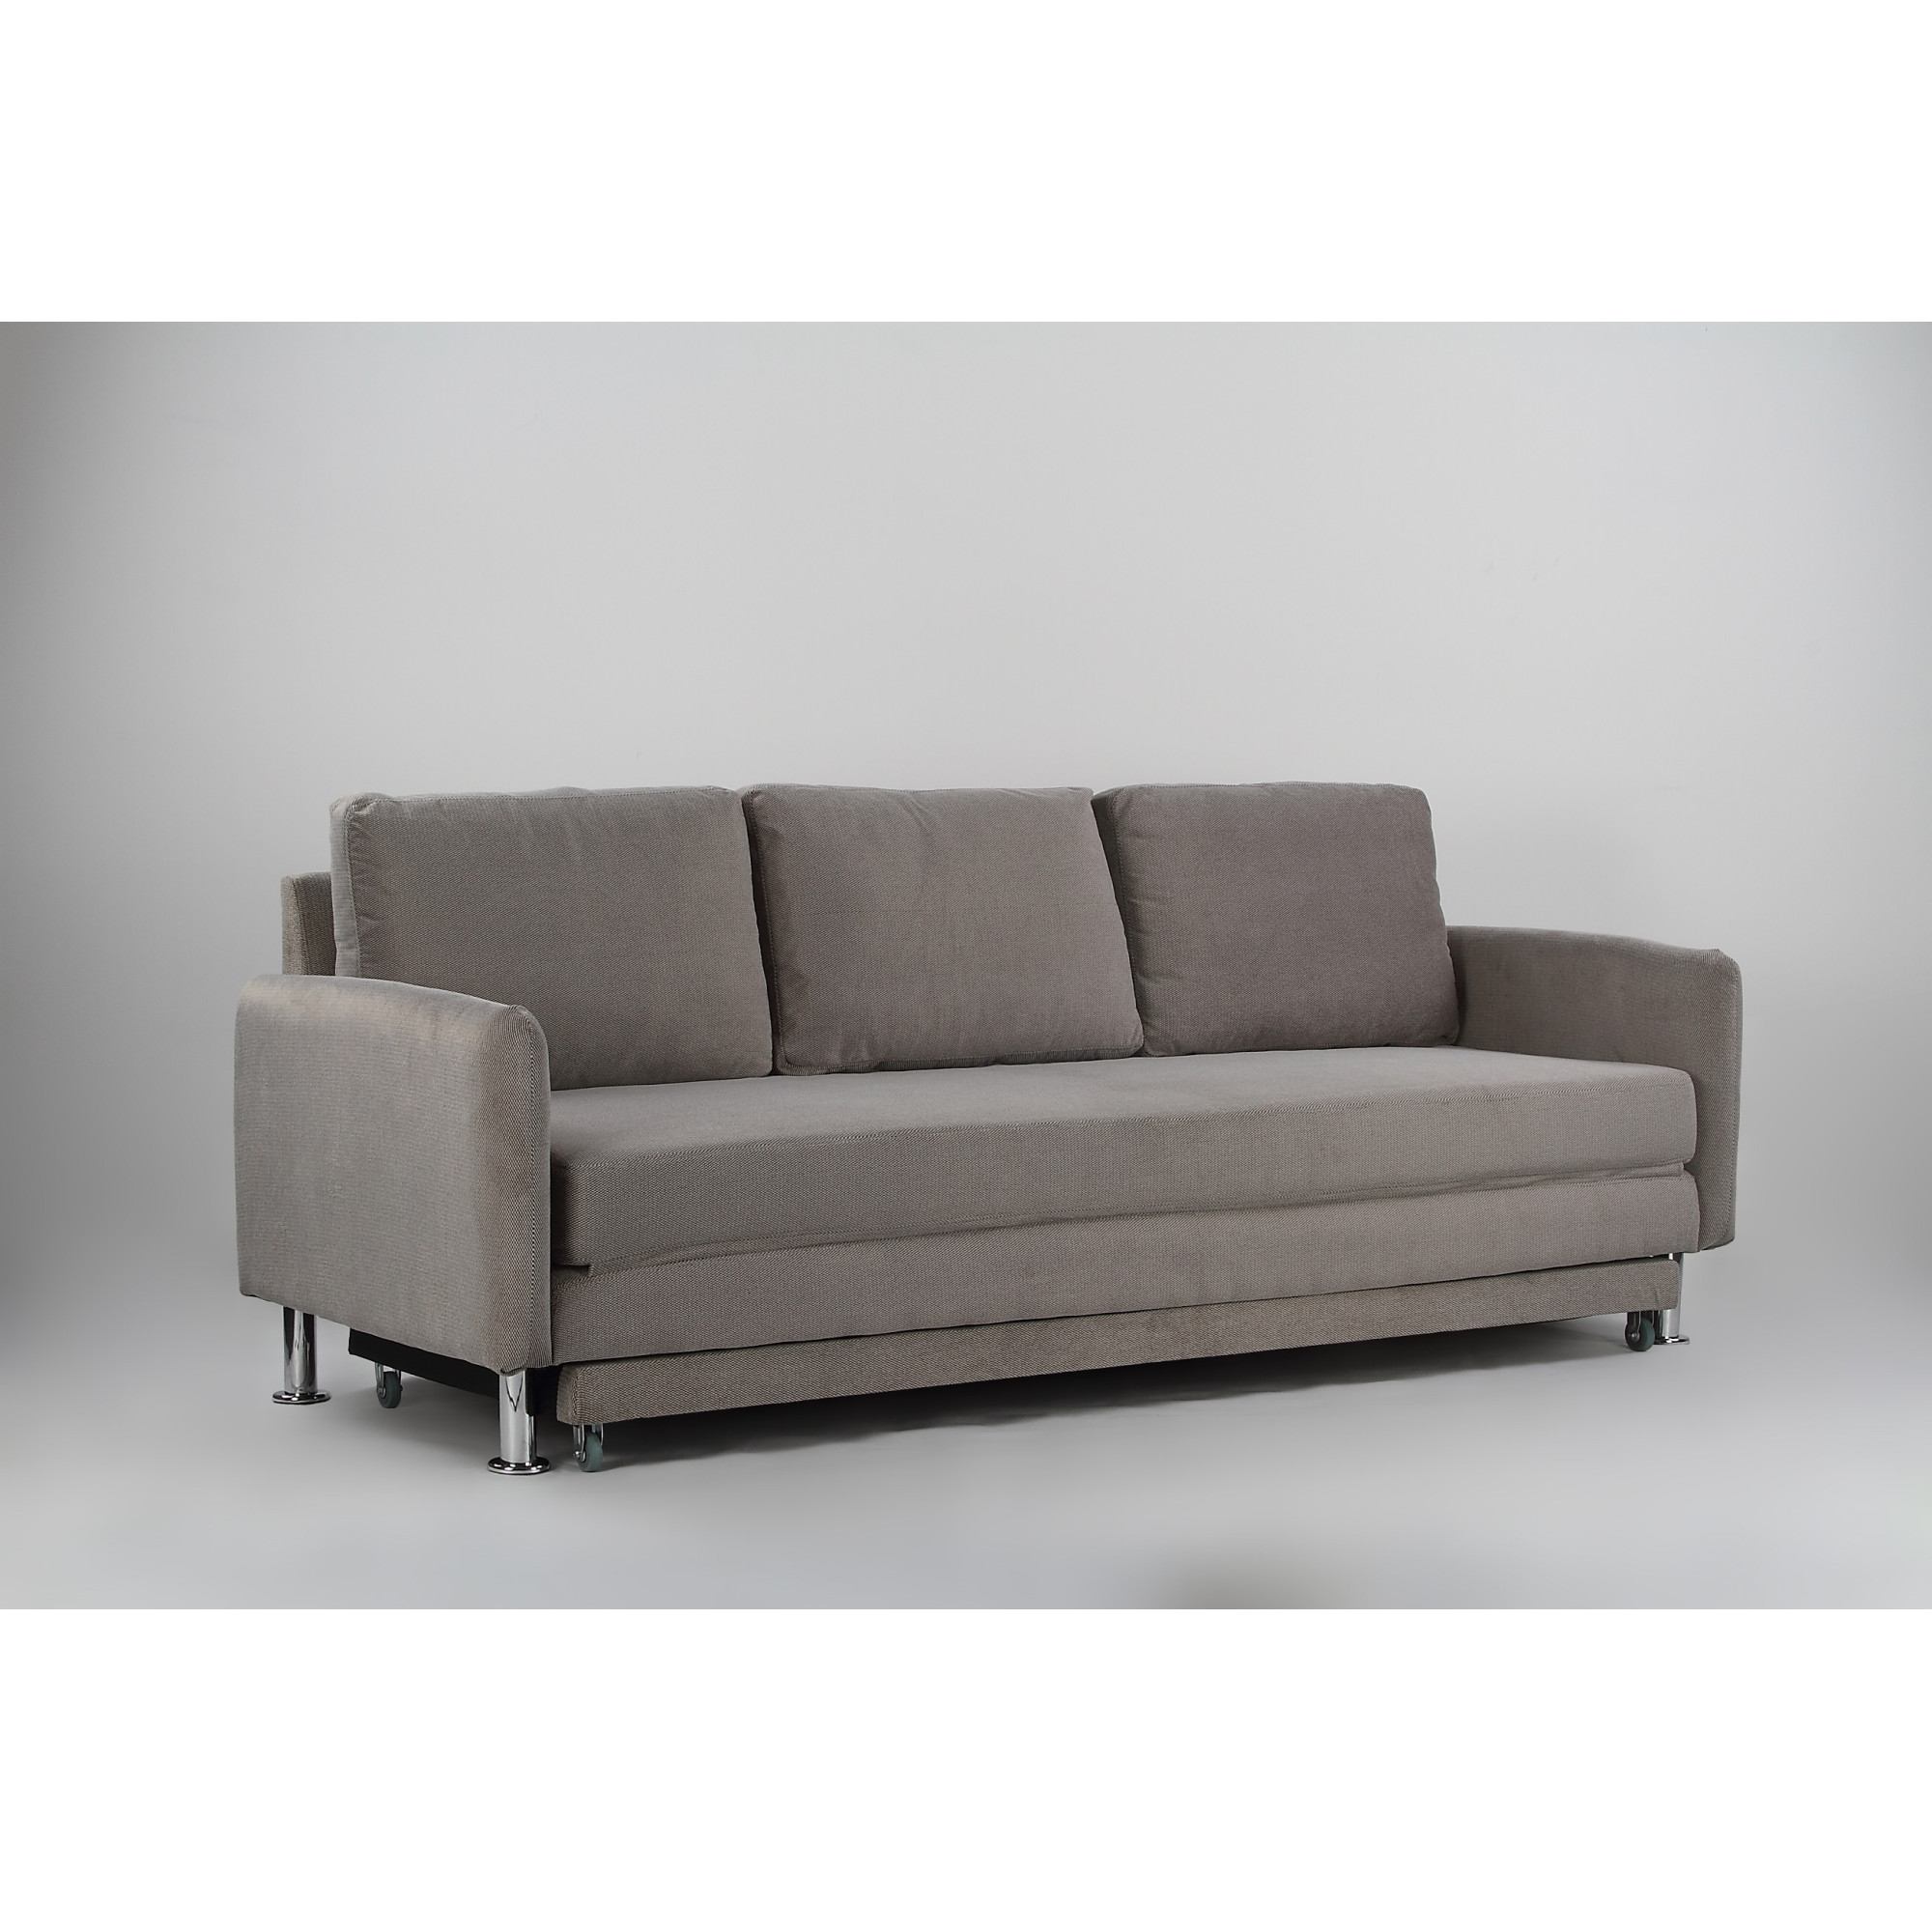 Pull Out Chair Cozy 3 Seater Grey Pull Out Sofa Bed Furniture And Home